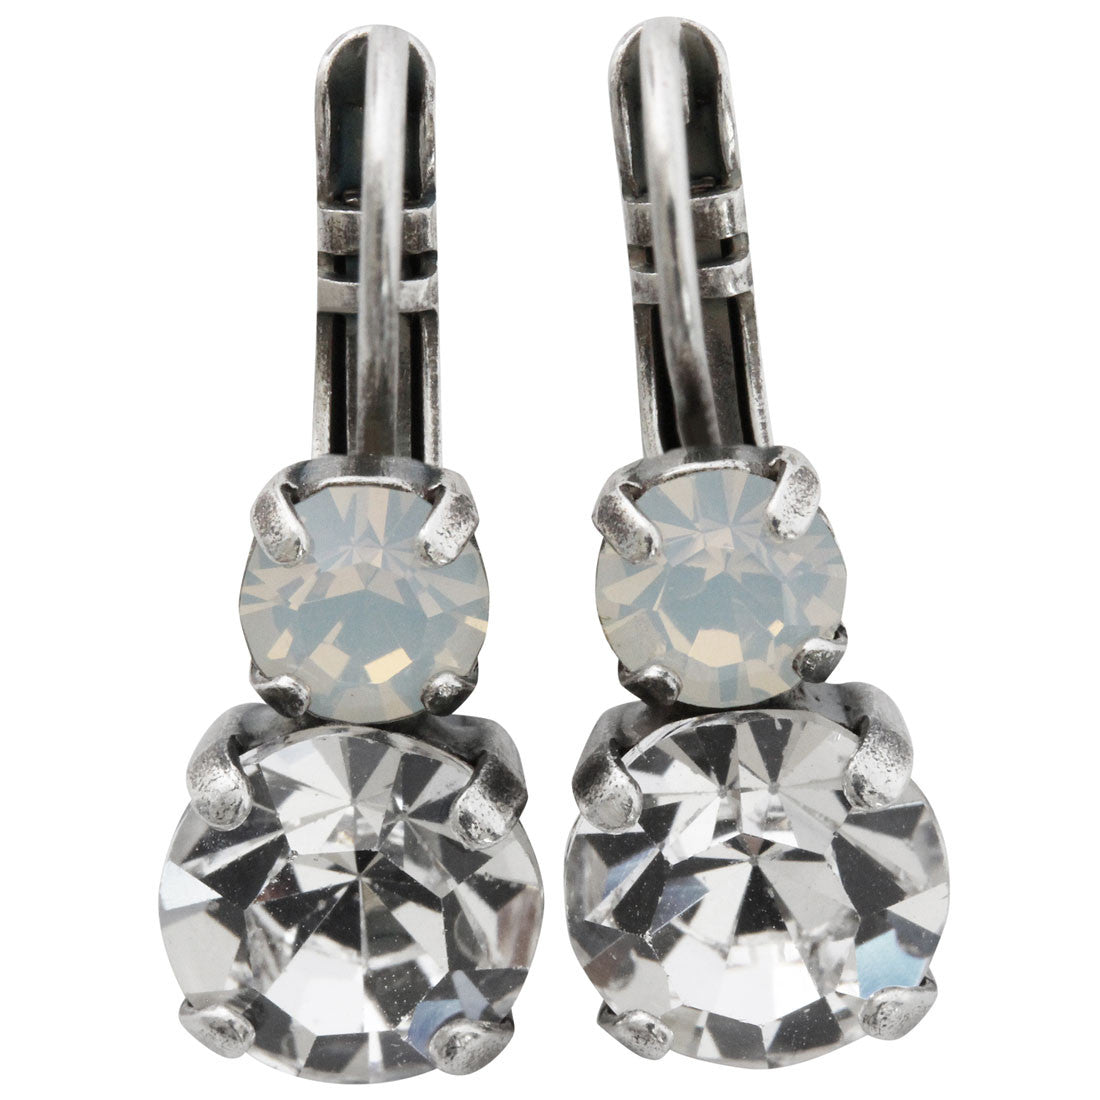 Mariana Silver Plated Double Drop Small Swarovski Crystal Earrings, Clear White Opal 1190 001